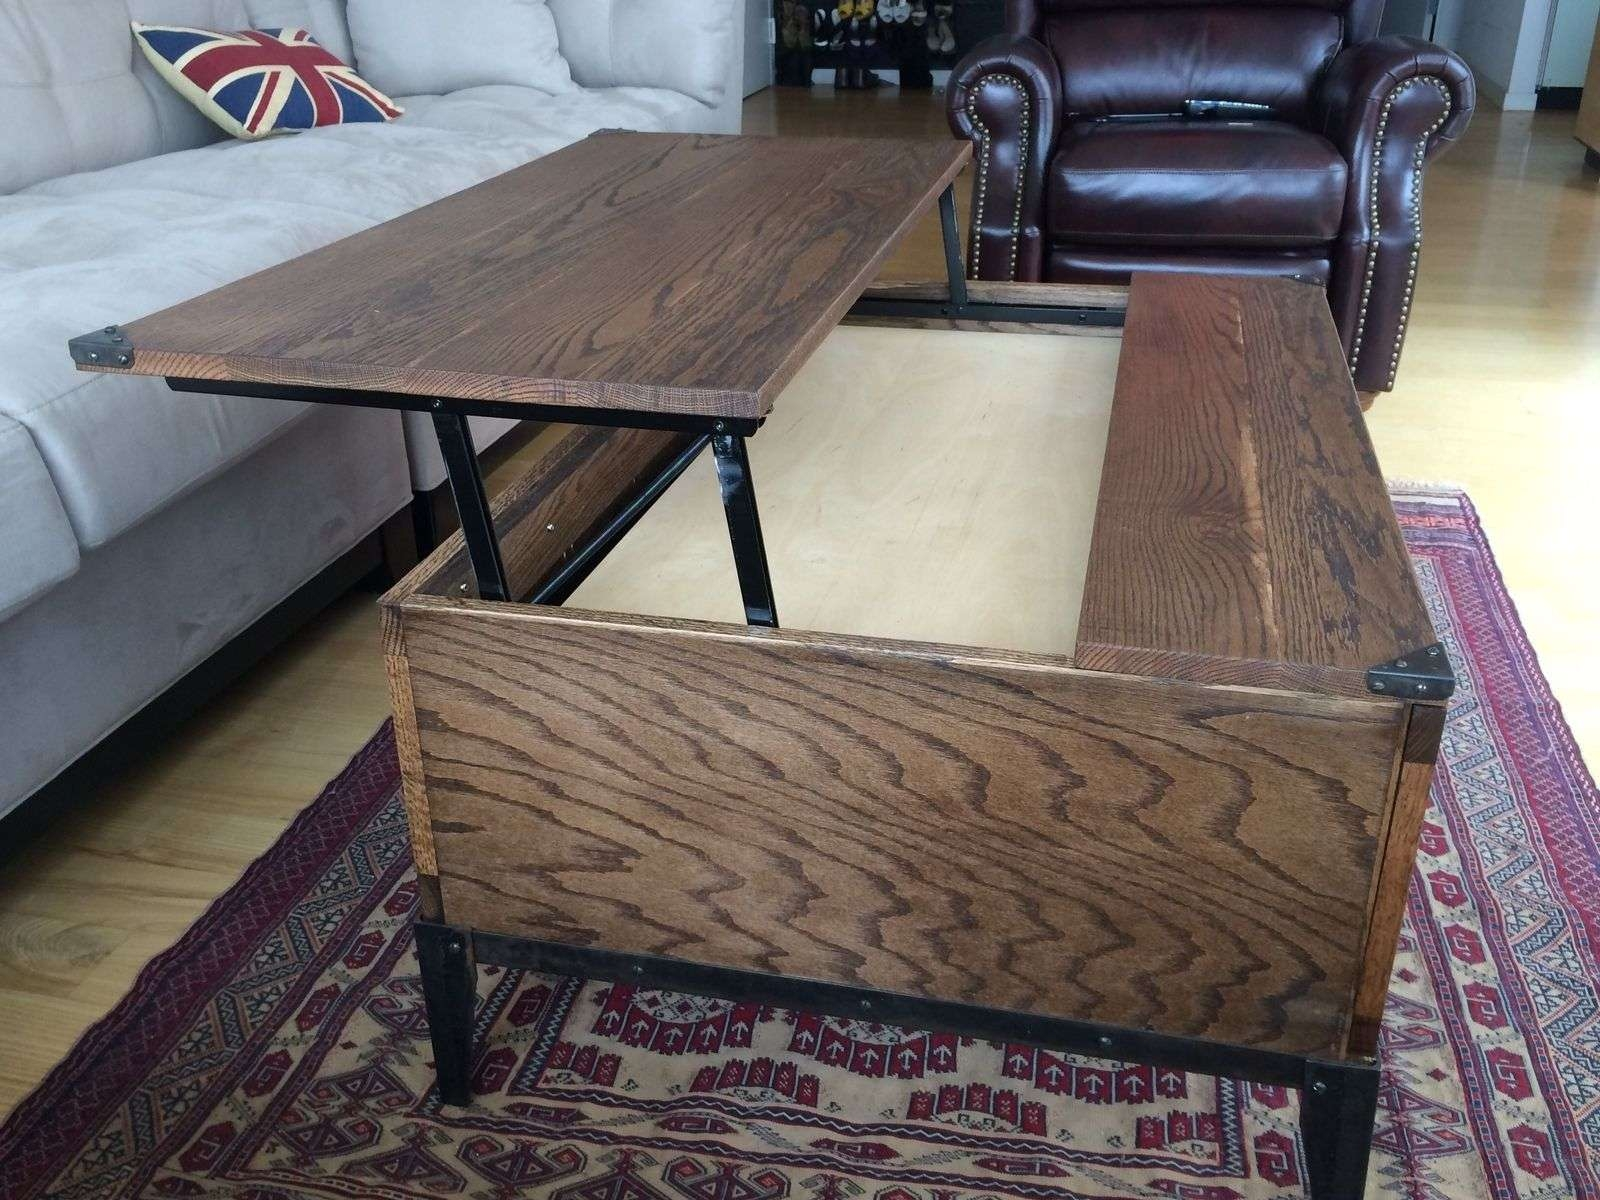 Custommade Pertaining To Latest Coffee Tables With Lifting Top (View 7 of 20)